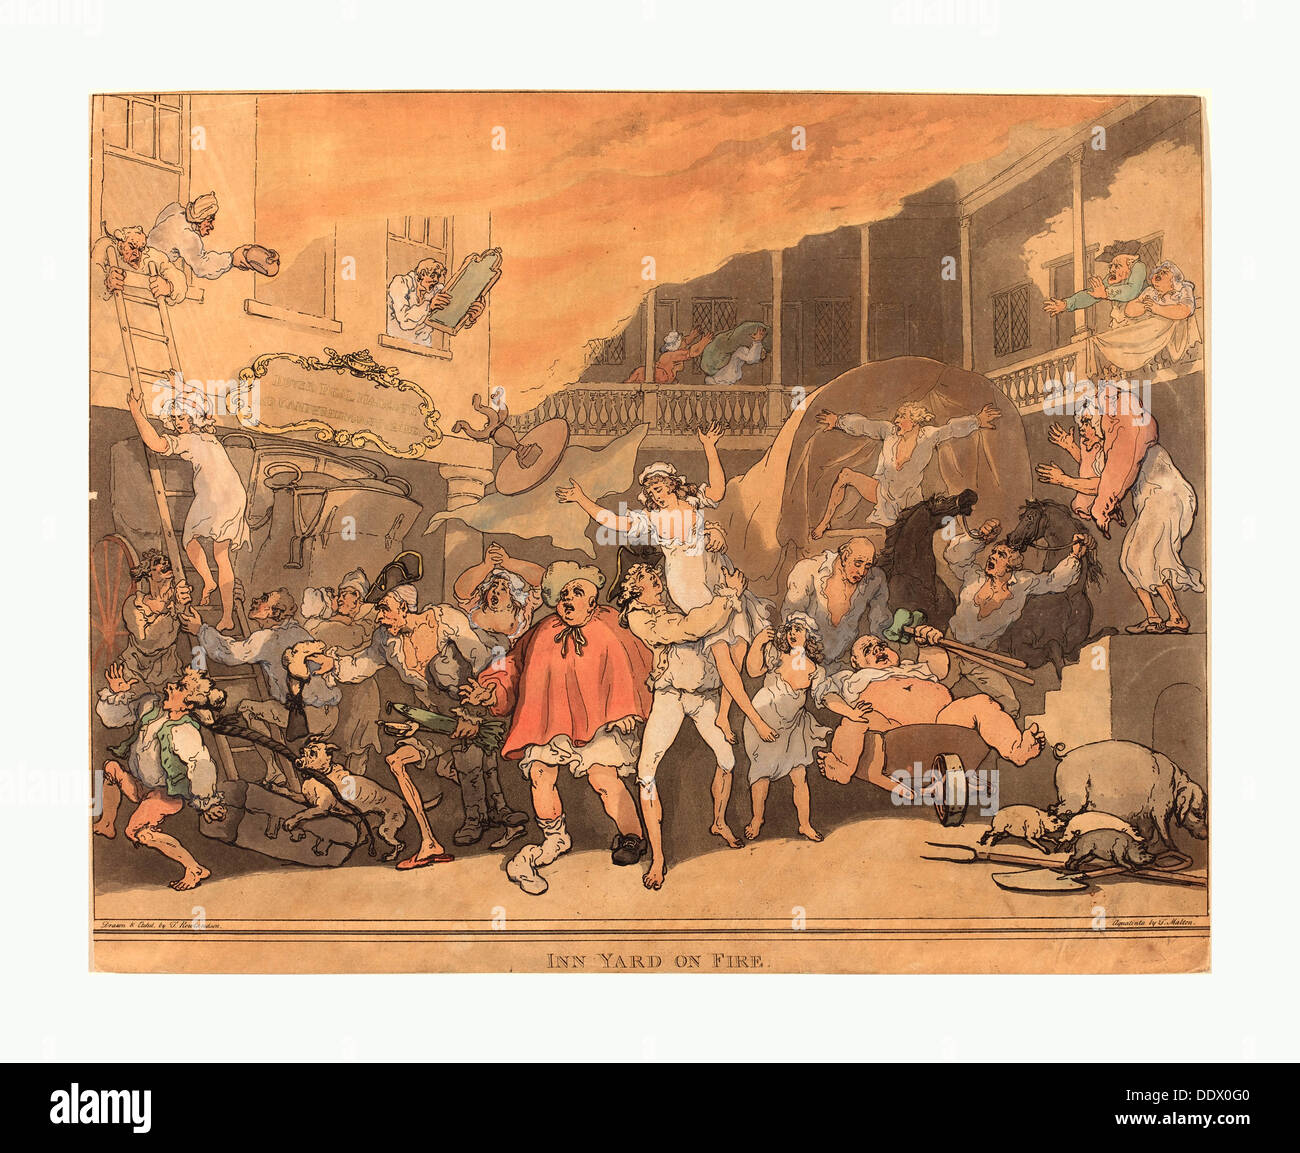 Thomas Rowlandson (British, 1756 - 1827 ), The Inn Yard on Fire, 1791, hand-colored etching and aquatint - Stock Image